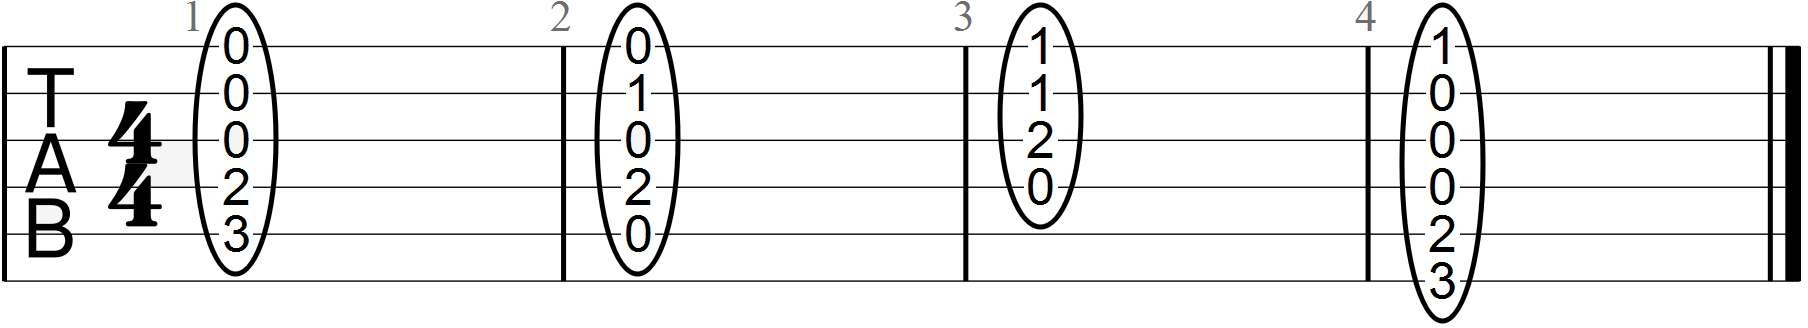 Blues Guitar Chords, Progressions and the Theory Involved   Guitar Chalk